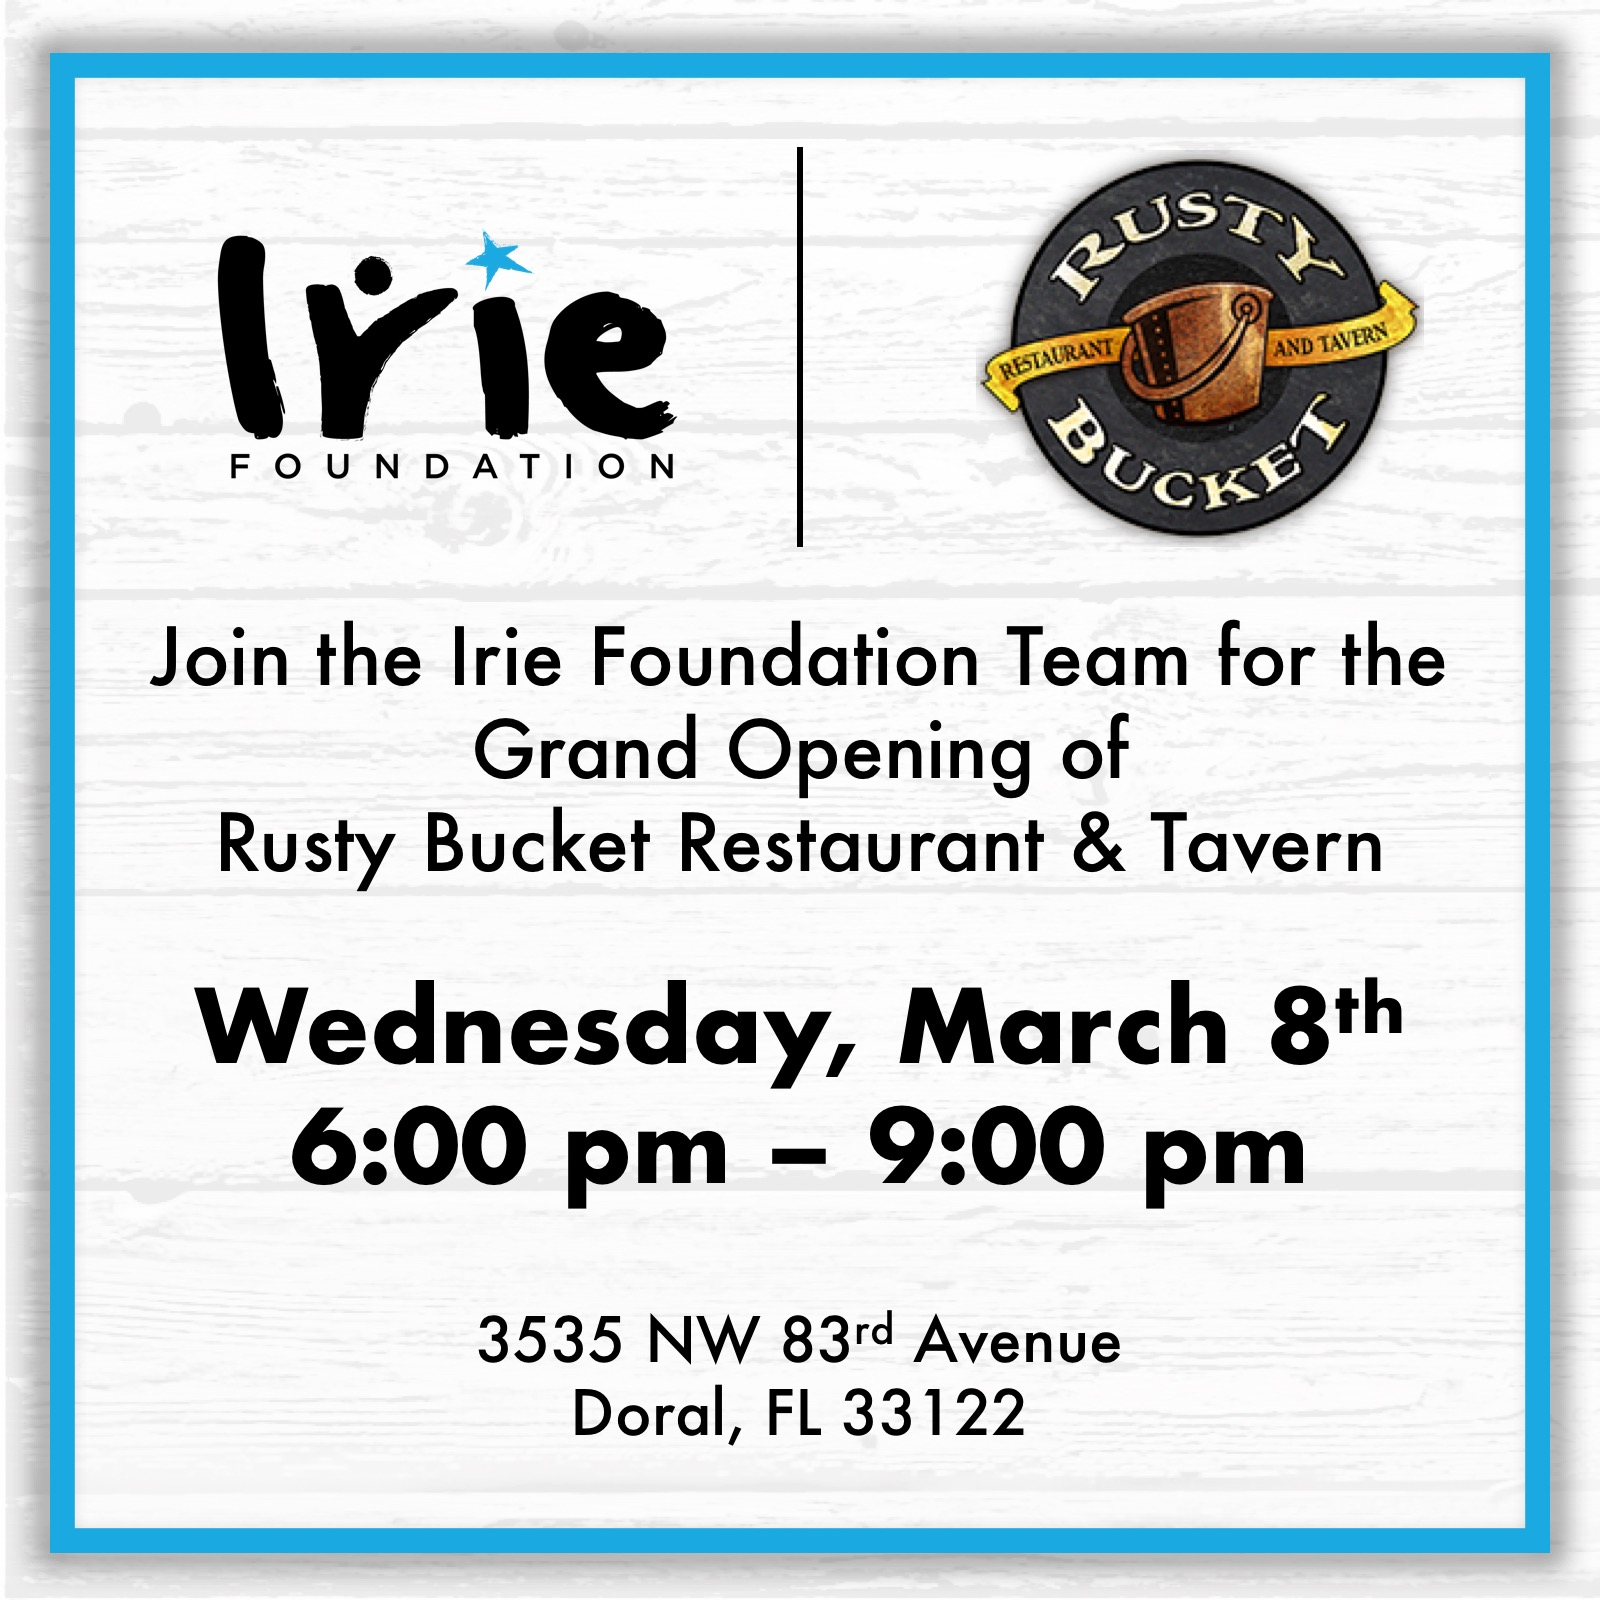 Come and join the Irie Foundation at the Grand Opening of the Rusty Bucket Restaurant and Tavern! 20% of opening day profits will be benefitting the Irie Foundation!